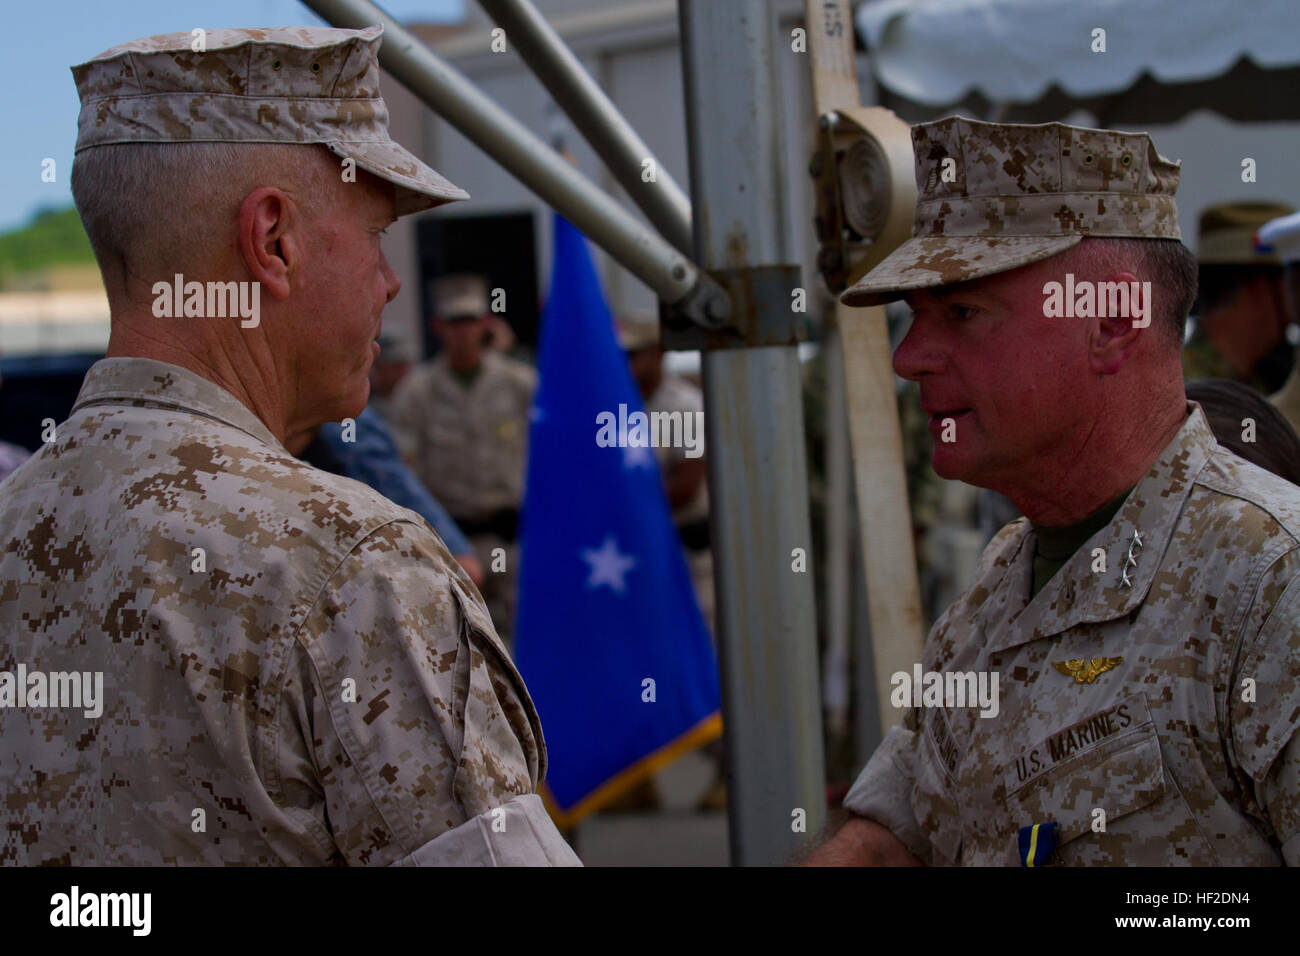 U.S. Marine Corps Gen. James F. Amos, commadant of the Marine Corps, and Lt. Gen. Terry G. Robling, former commander, Stock Photo